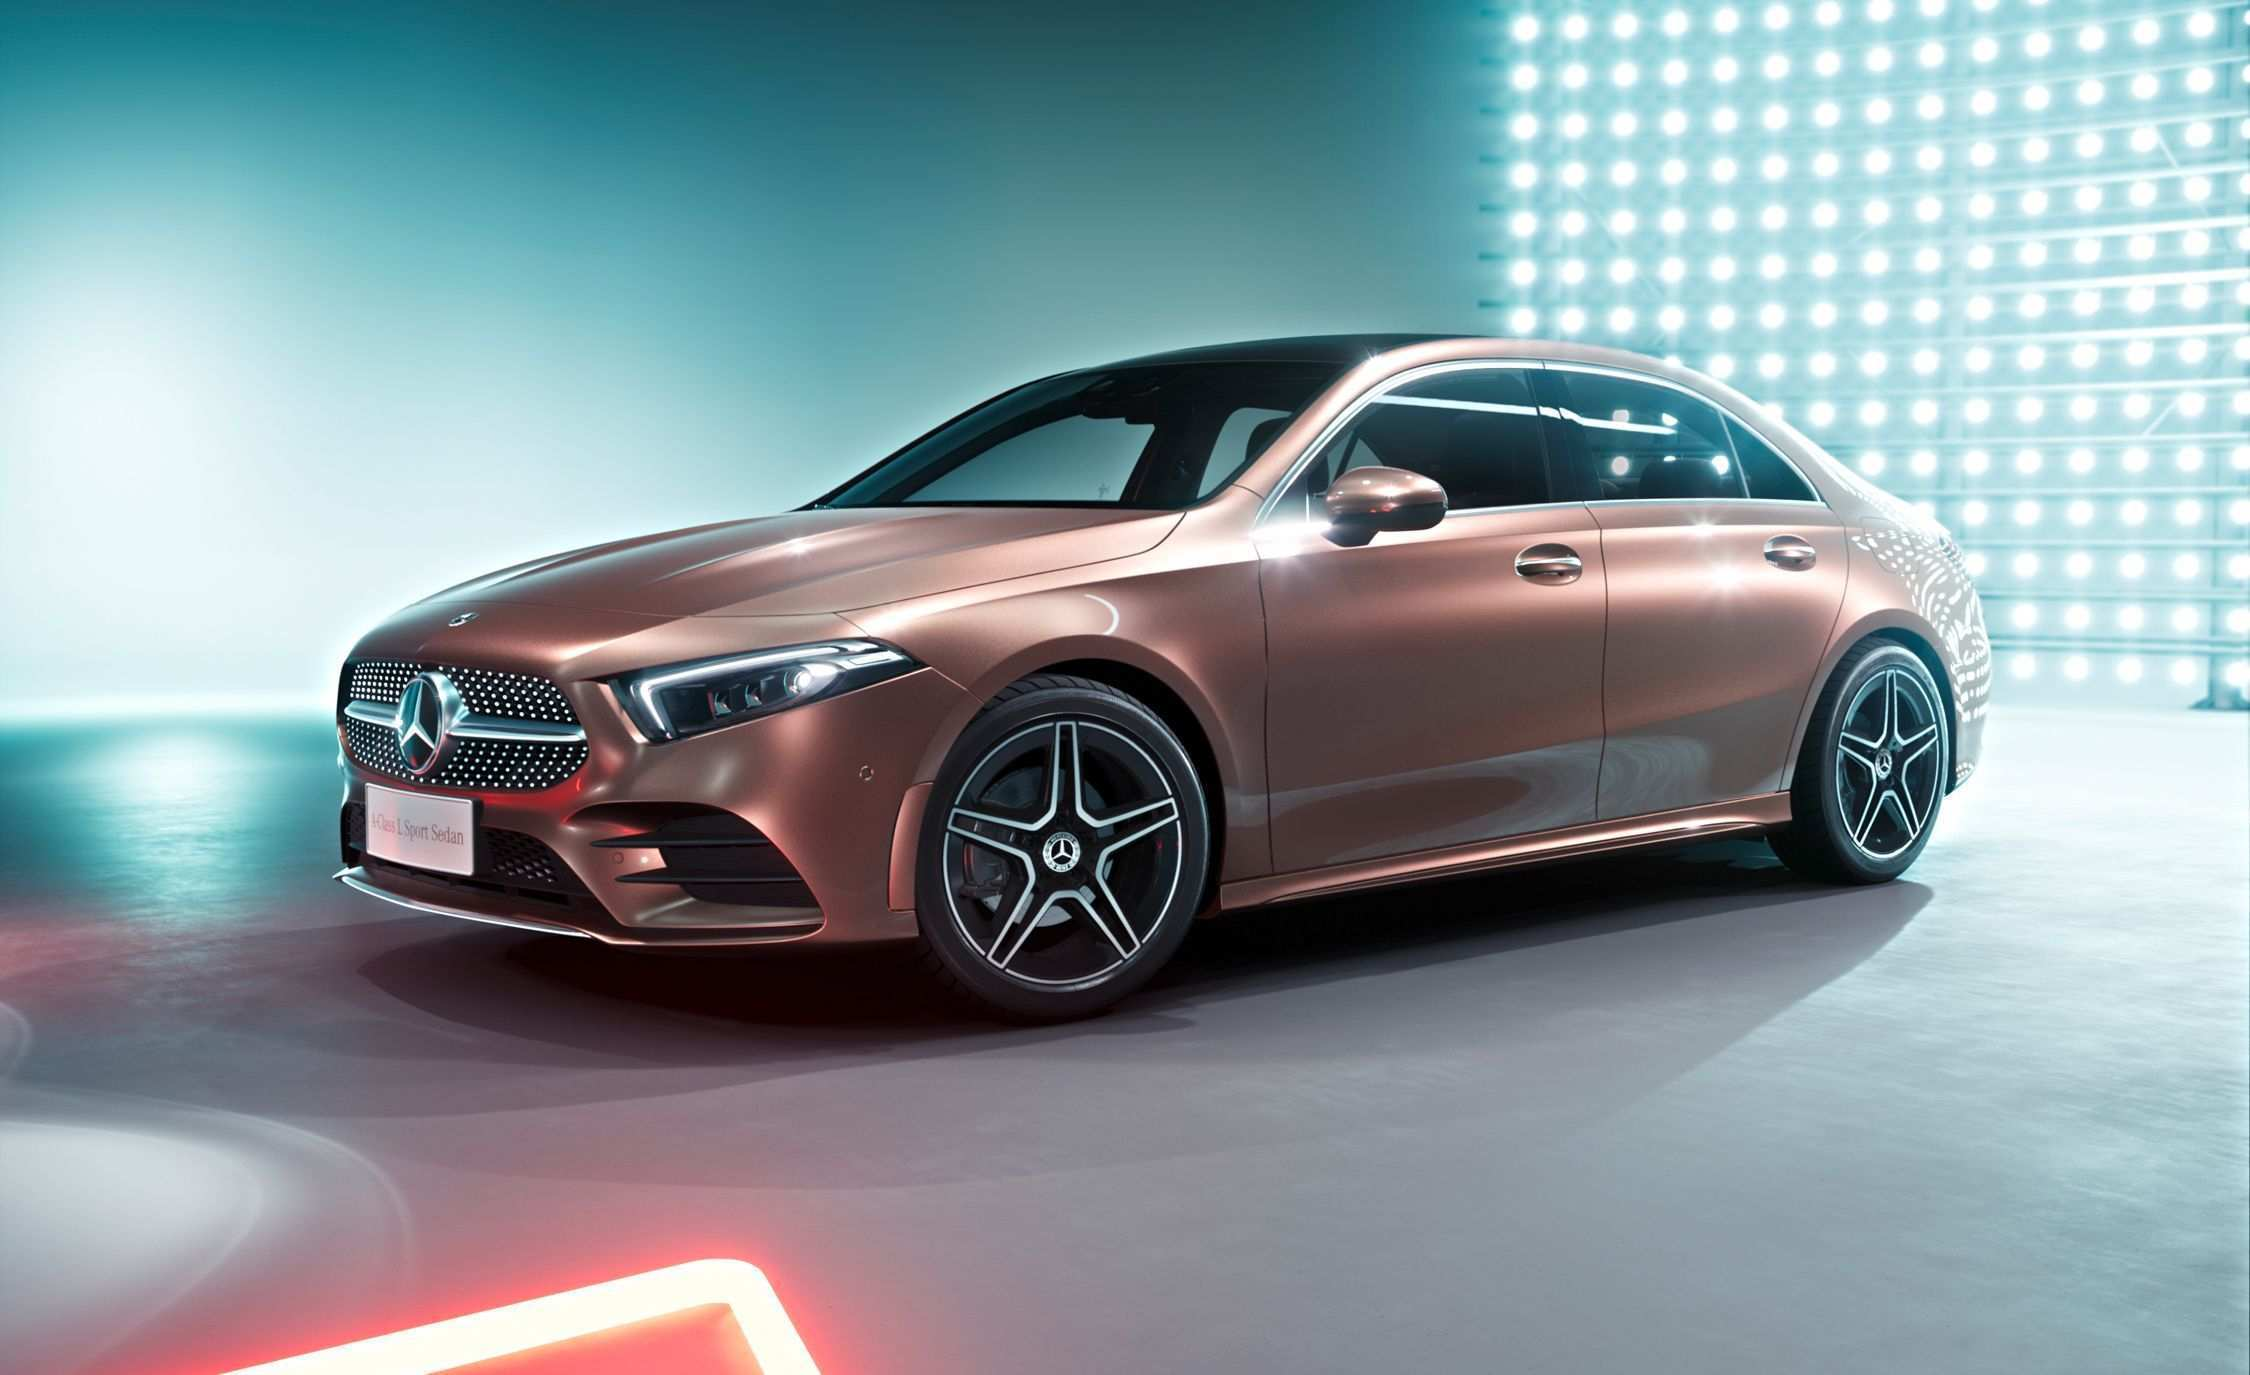 76 Concept of Best Mercedes 2019 Precio Concept Redesign And Review Performance and New Engine with Best Mercedes 2019 Precio Concept Redesign And Review